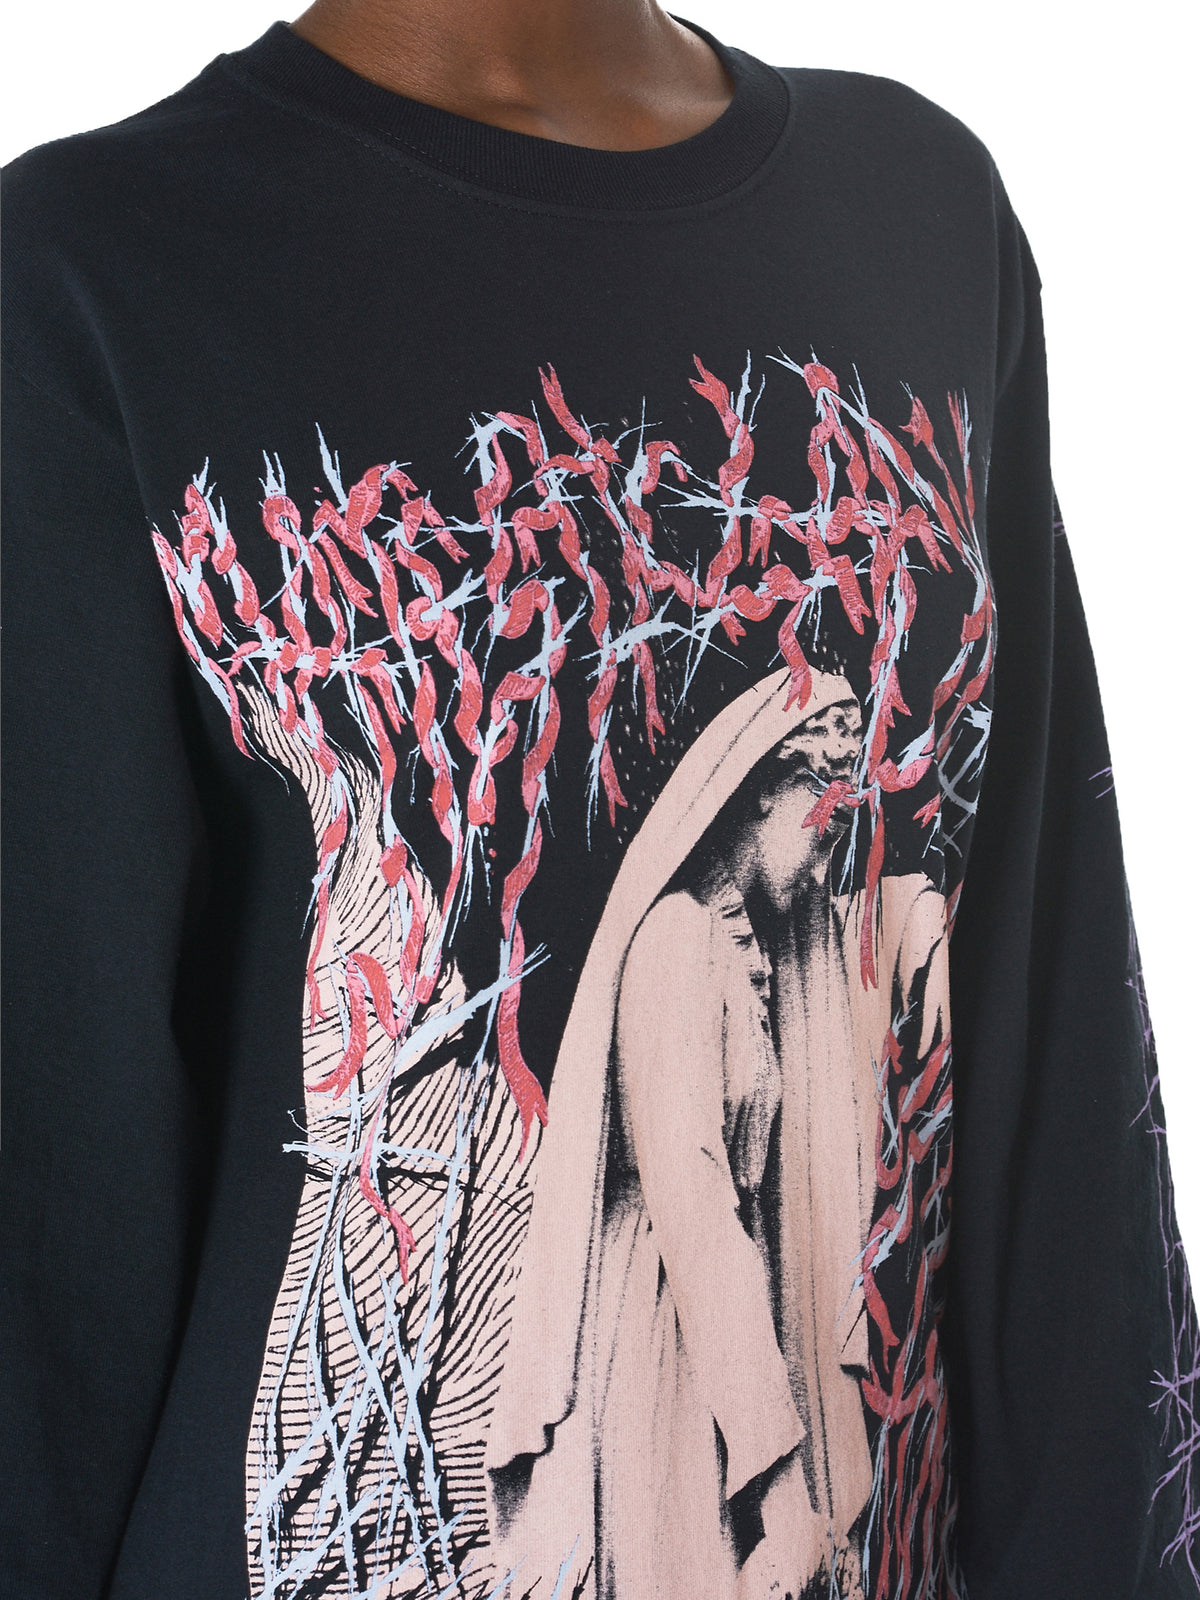 'Our Majestic Lady of Sorrow' Long-Sleeve Tee (OUR-MAJESTIC-LADY-OF-SORROW-BK)